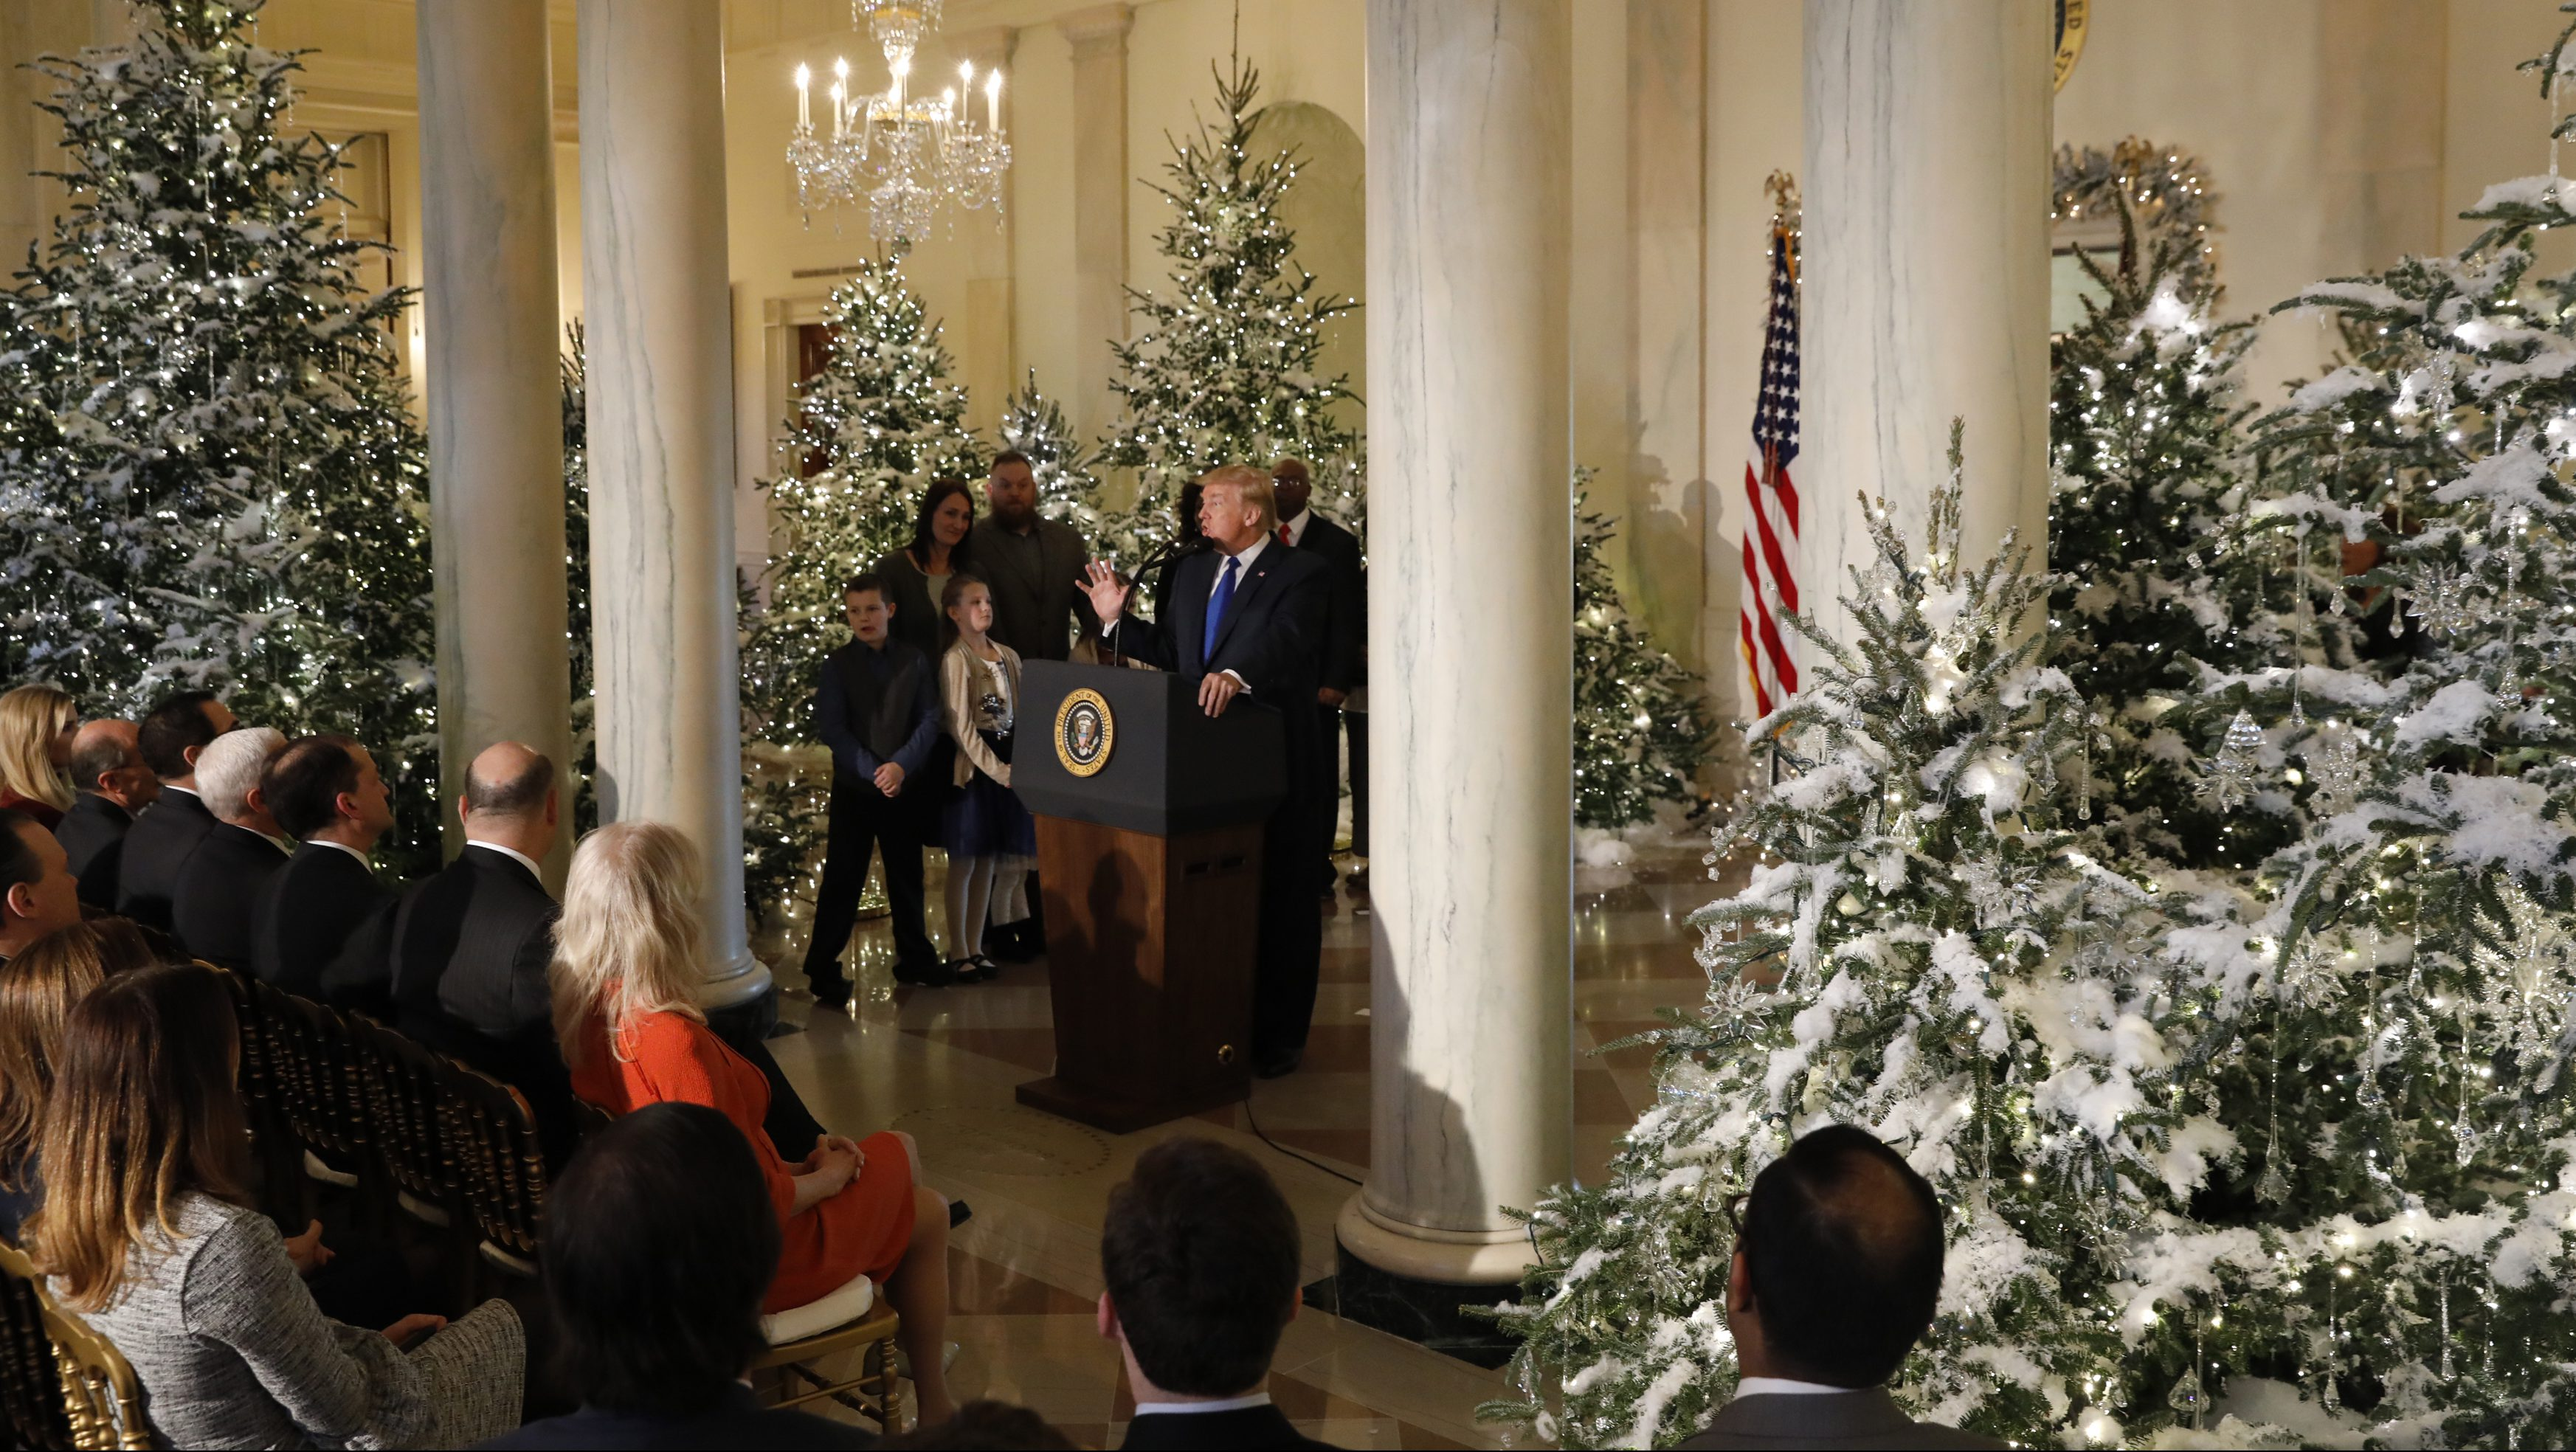 U.S. President Donald Trump delivers a speech on tax reform legislation from the Grand Foyer at the White House in Washington, U.S., December 13, 2017.